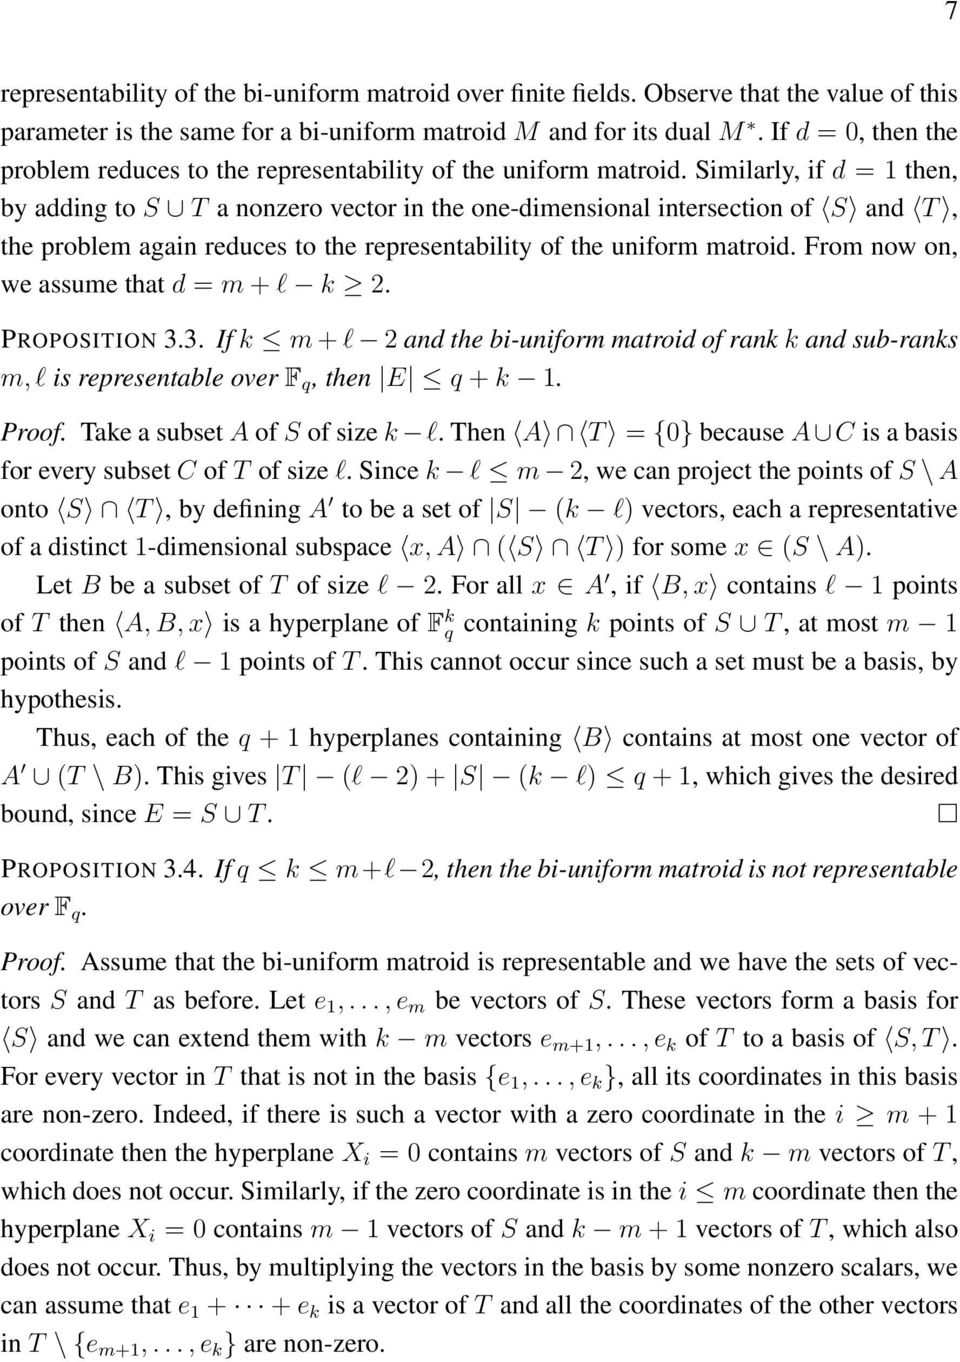 Similarly, if d = 1 then, by adding to S T a nonzero vector in the one-dimensional intersection of S and T, the problem again reduces to the representability of the uniform matroid.